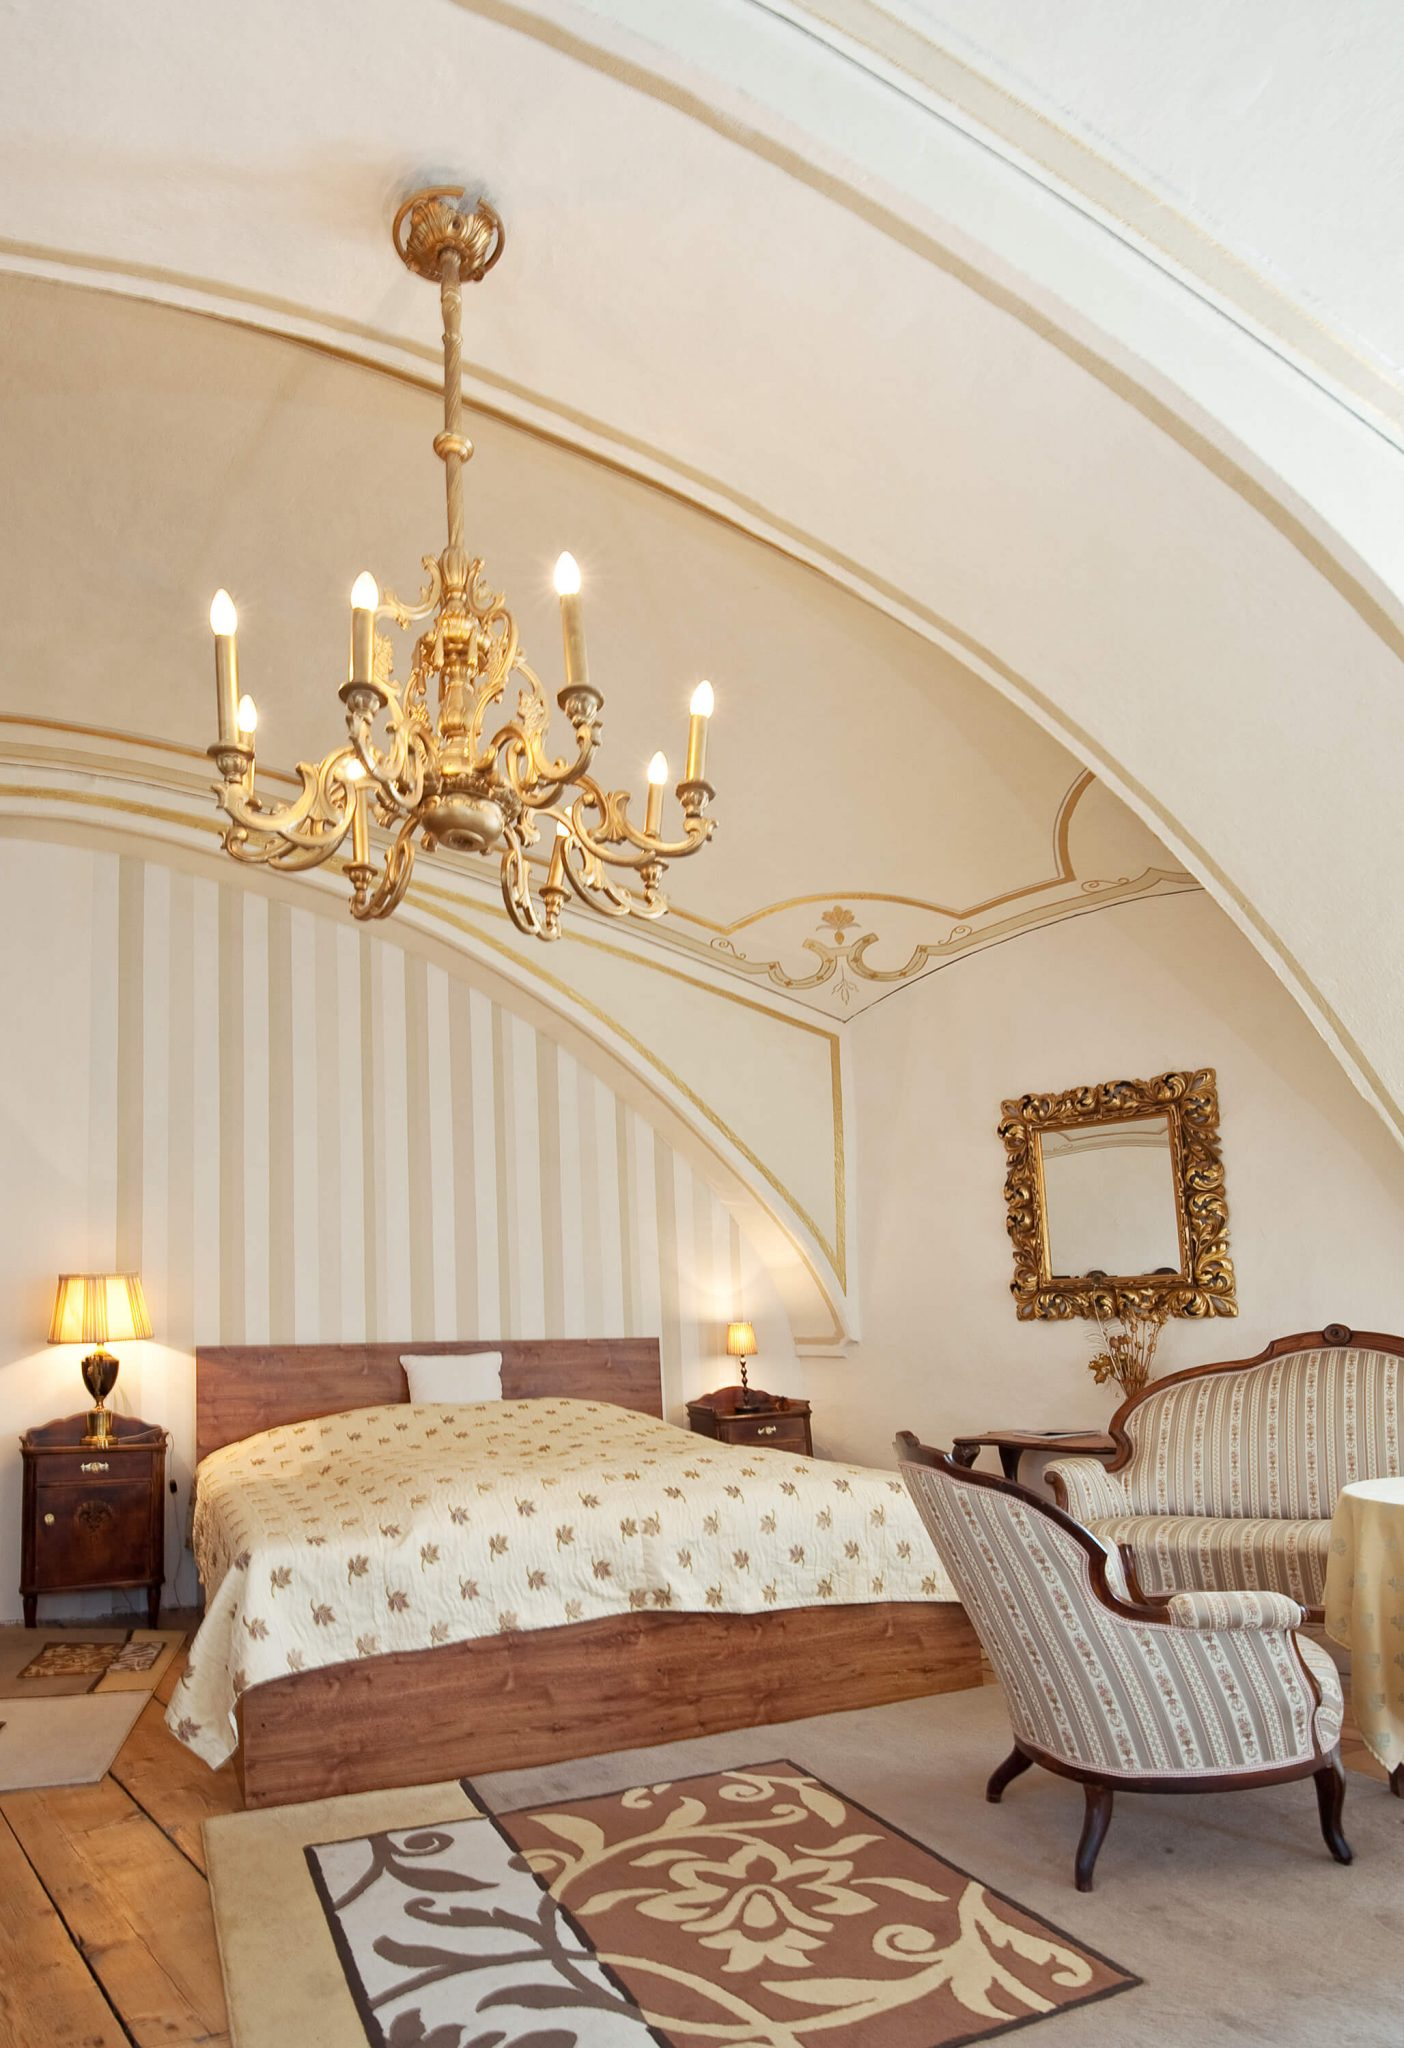 This room features a large arcing ceiling punctuated by gold chandelier.